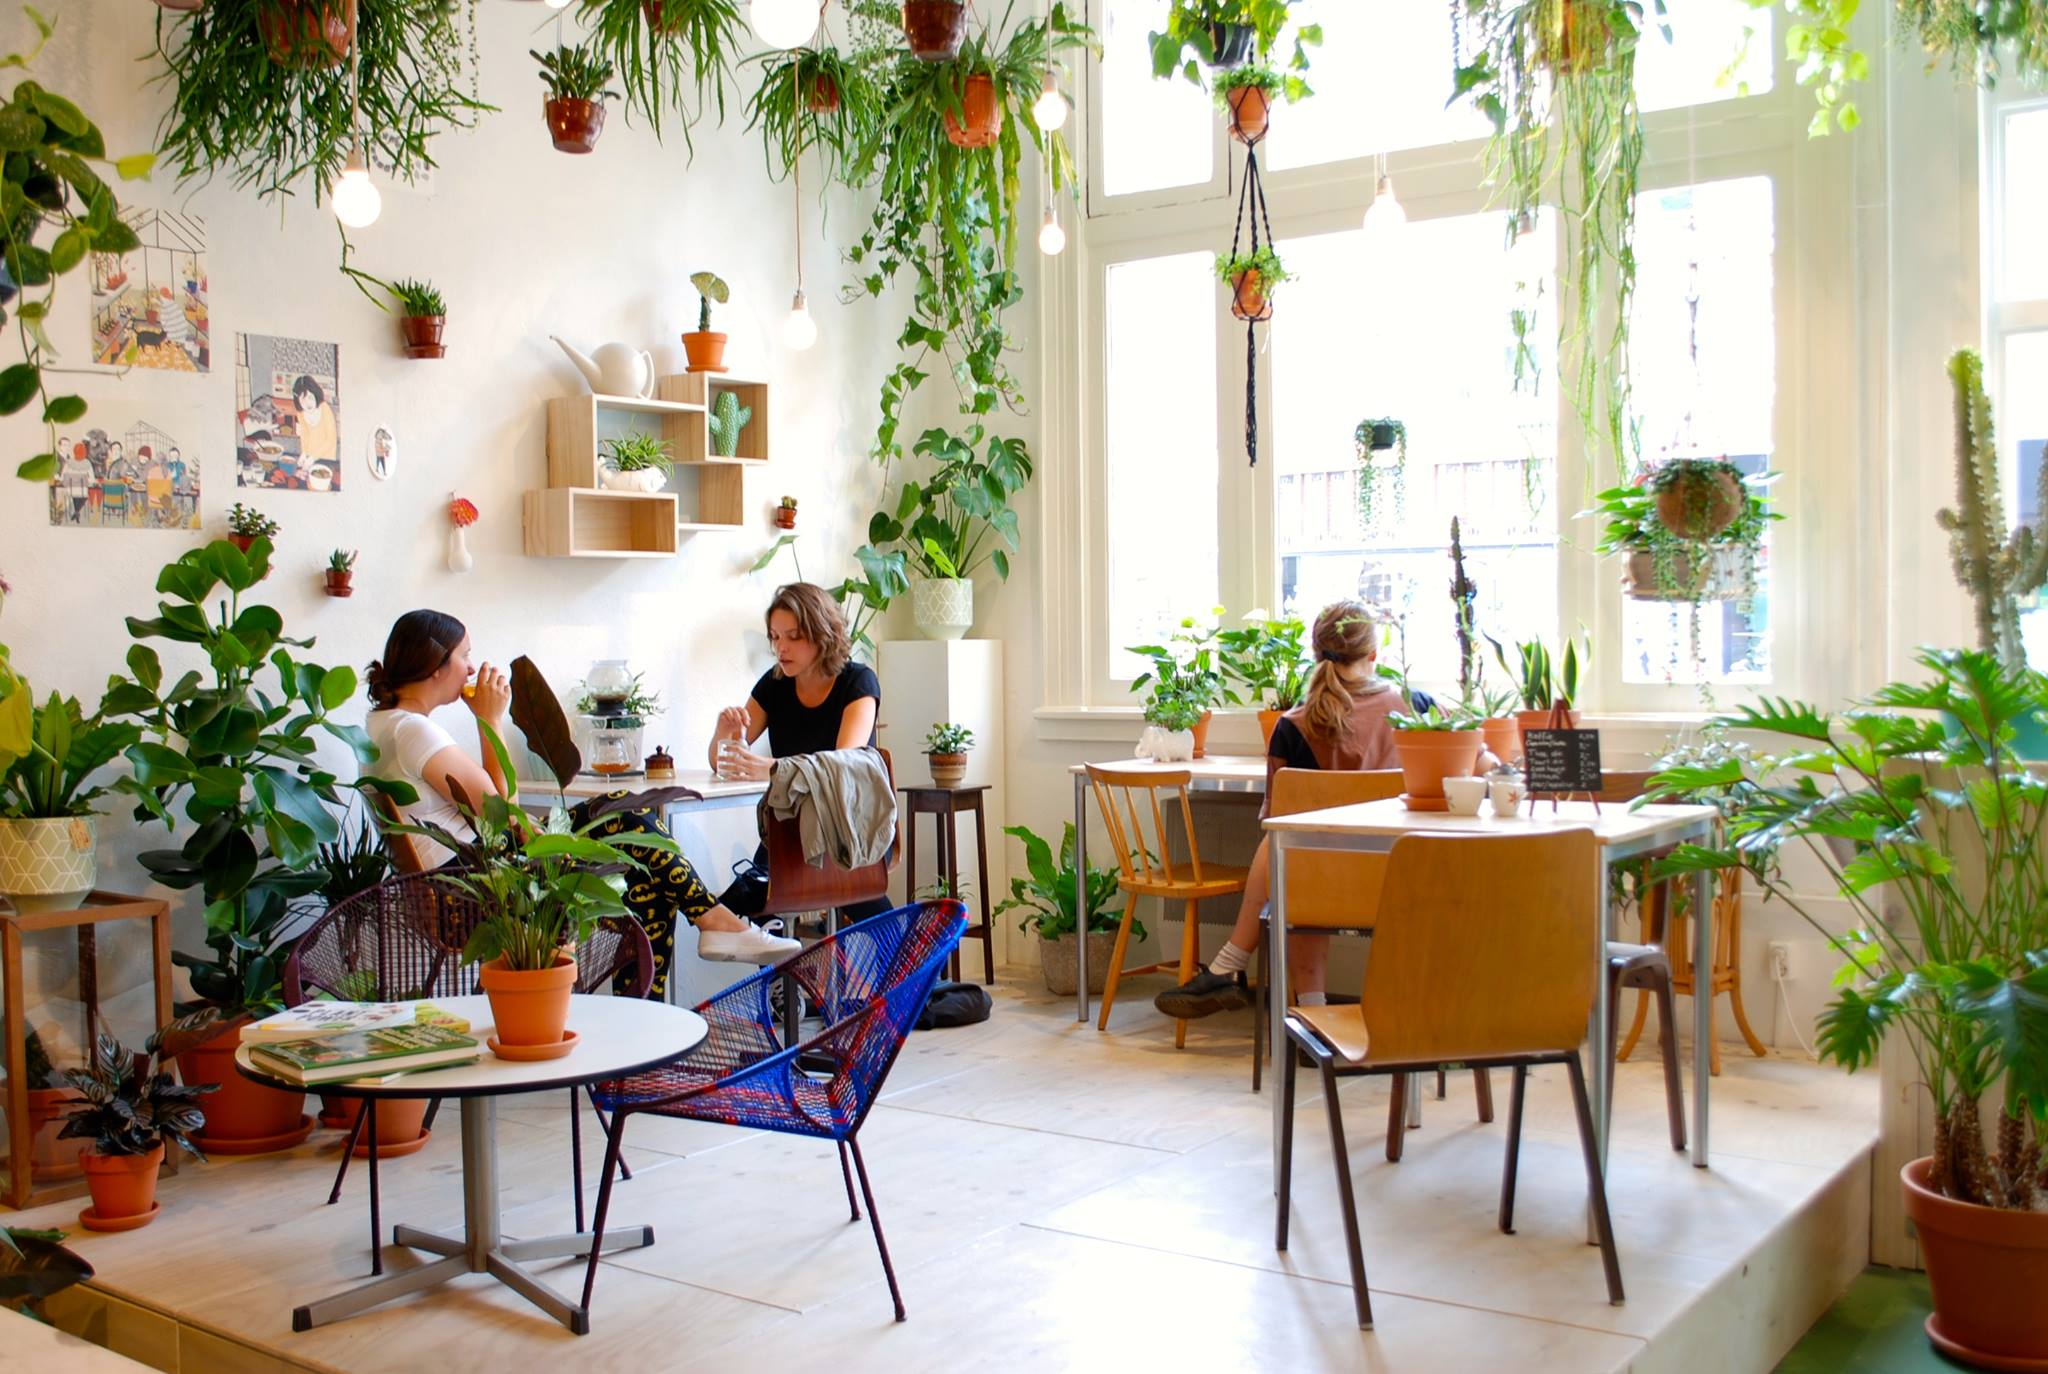 Plant Shop Amsterdam We Would Live In This Amsterdam Cafe If We Could